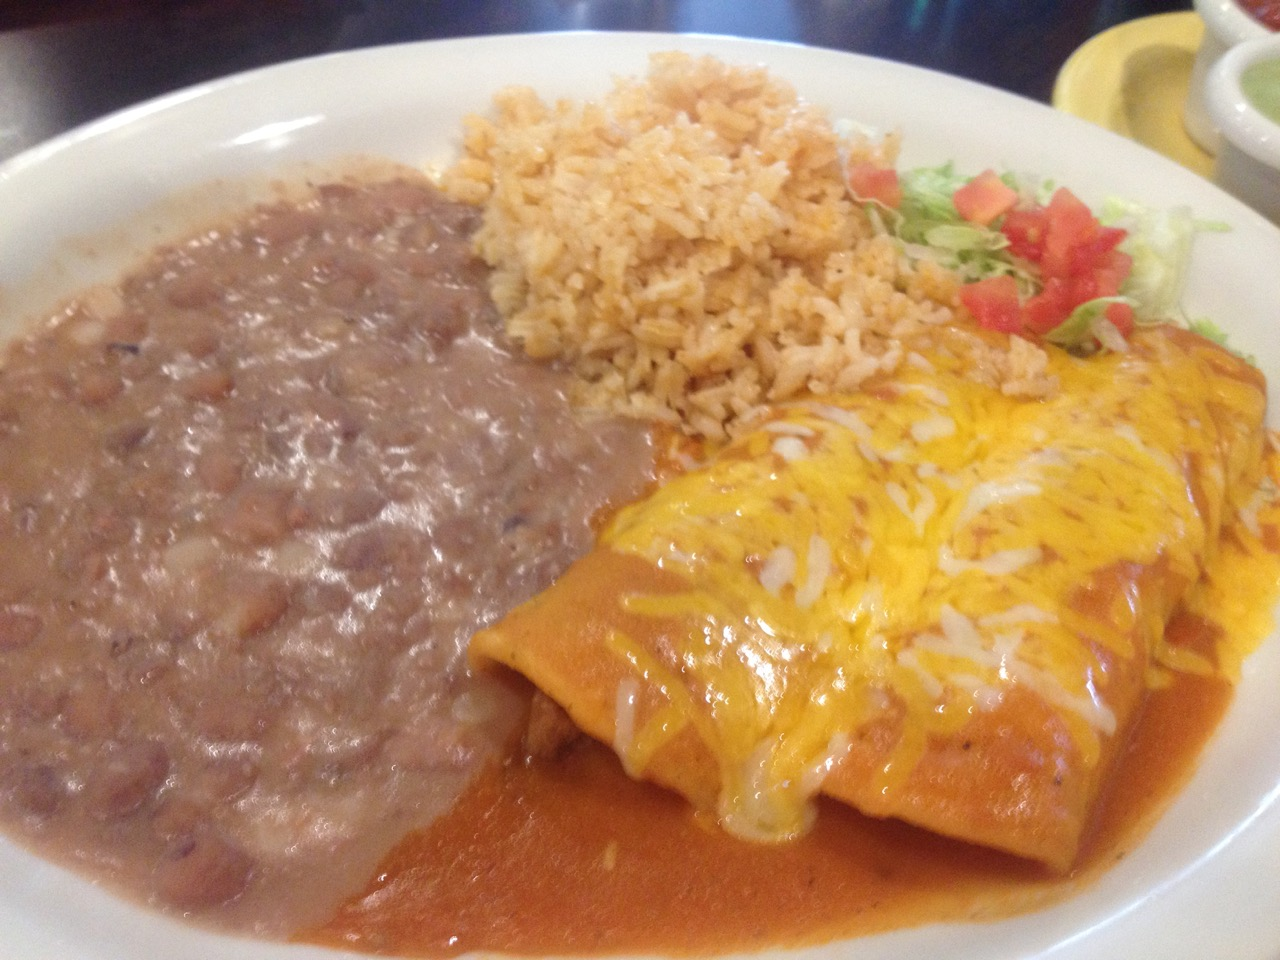 Beef Enchiladas at Fiesta Mexican Restaurant in Kennewick – April 2 2019